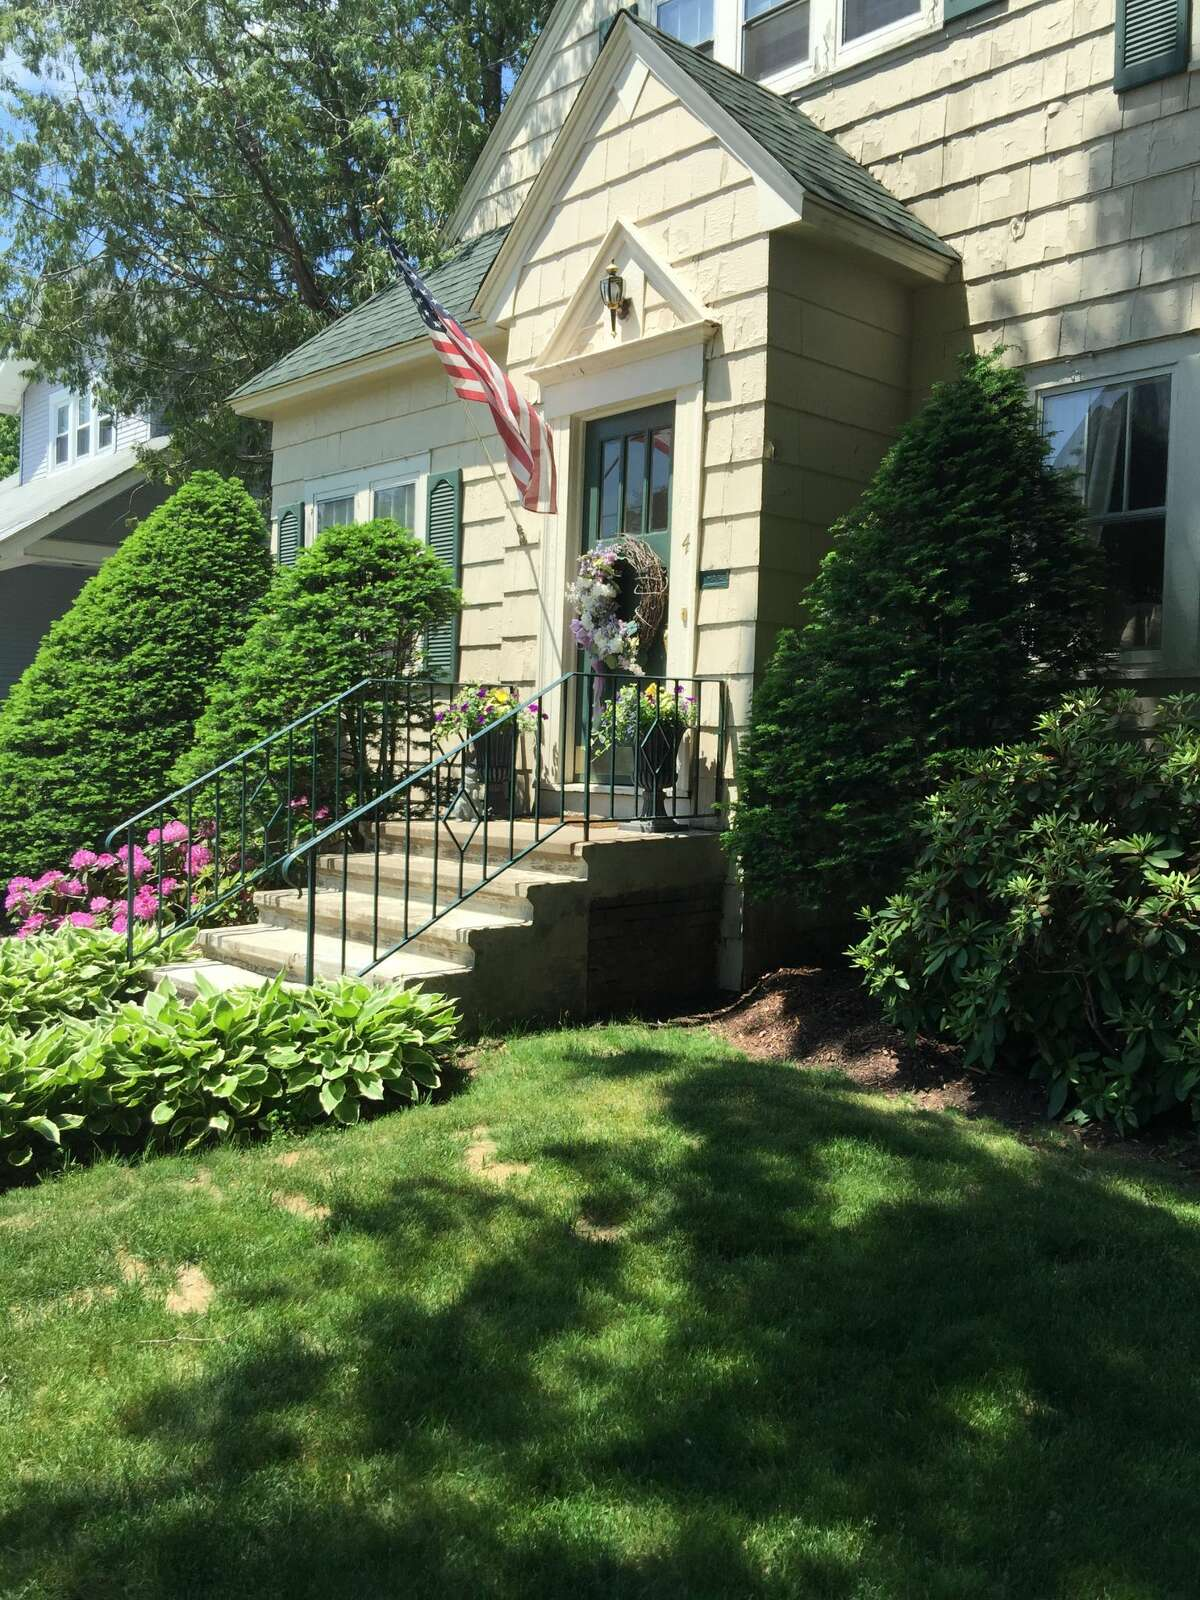 House of the Week: 4 Bowman Ave., Glens Falls   Realtor: For sale by owner   Discuss: Talk about this house